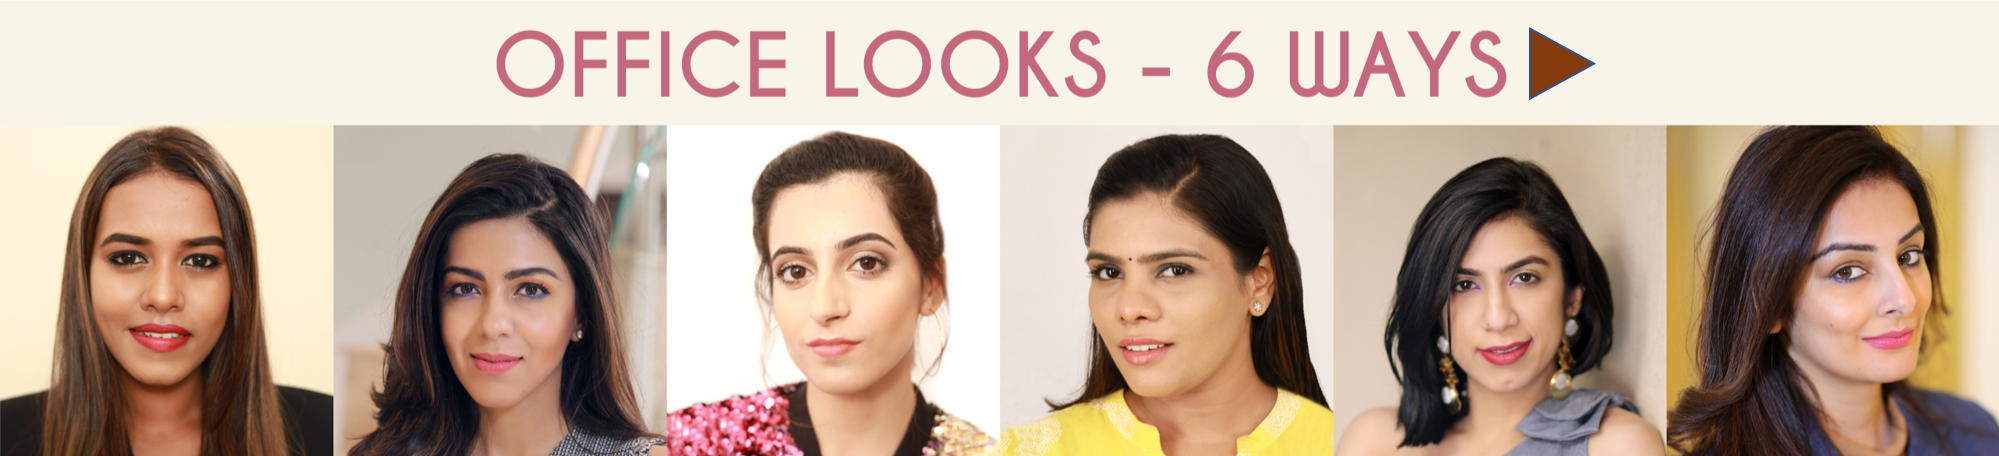 make up looks by myglamm, office looks by myglamm